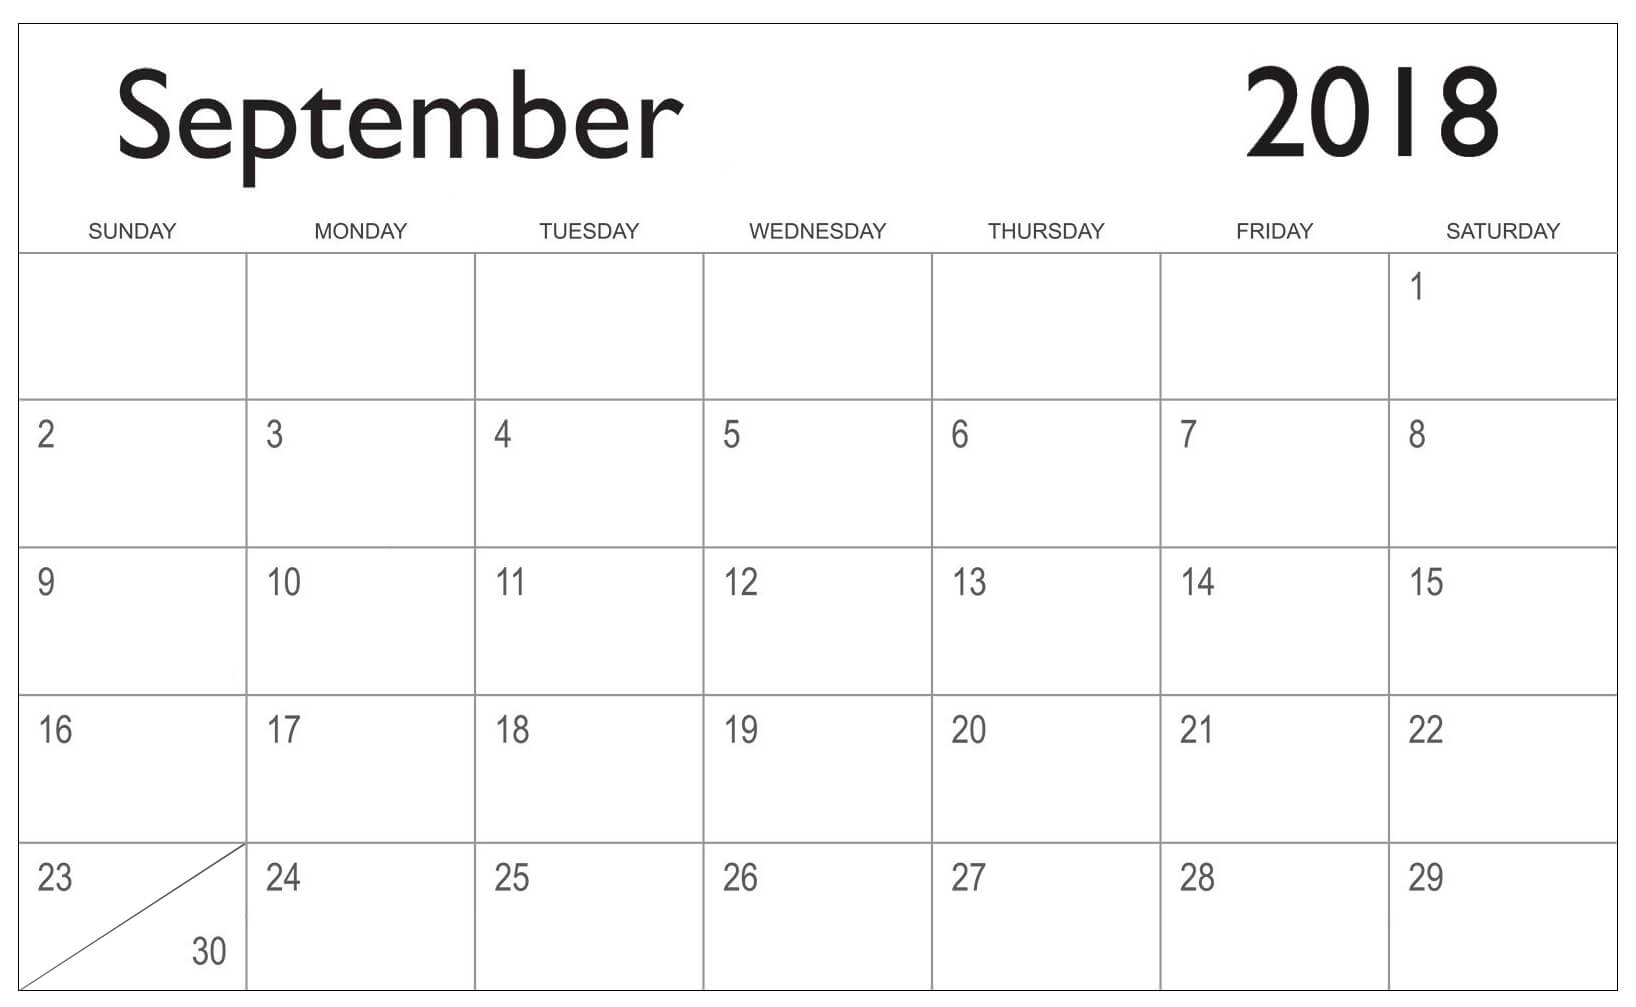 September 2018 Calendar Template Printable